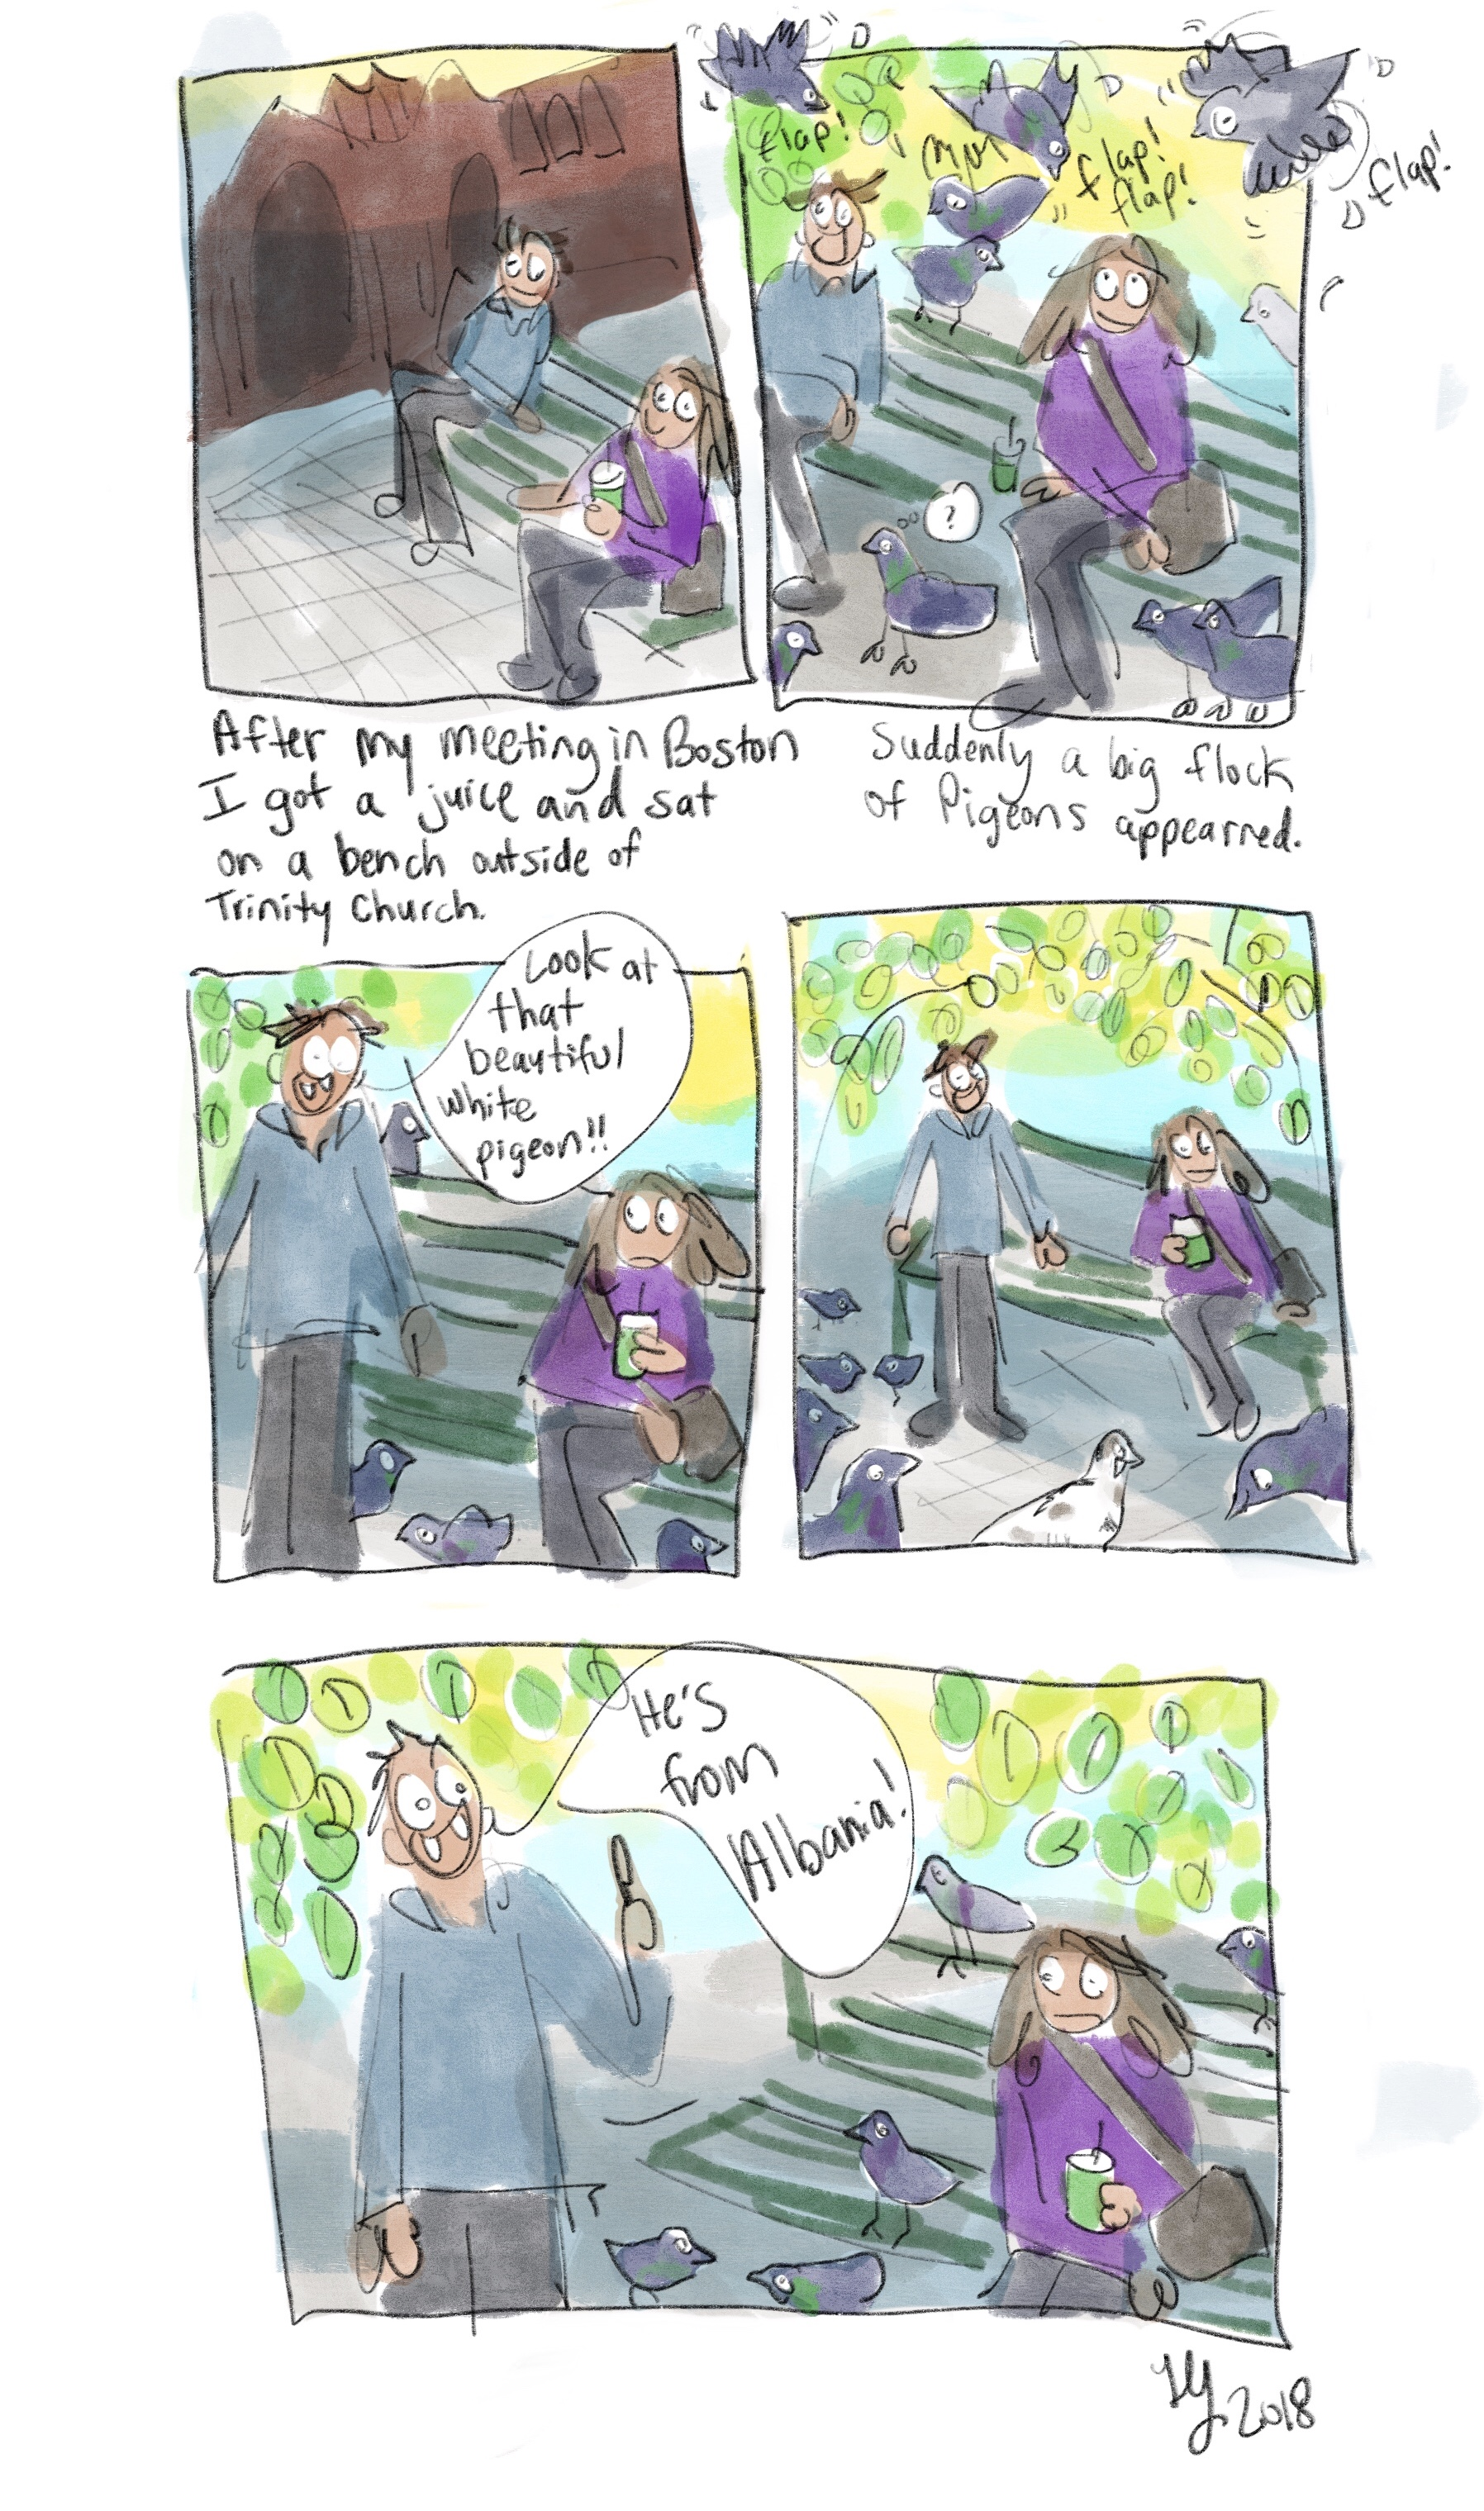 I drew this comic about my trip to Boston. A random stranger pointed out a beautiful white pigeon and told me that the bird was Albania. What?! It's a comic about a weird situation.